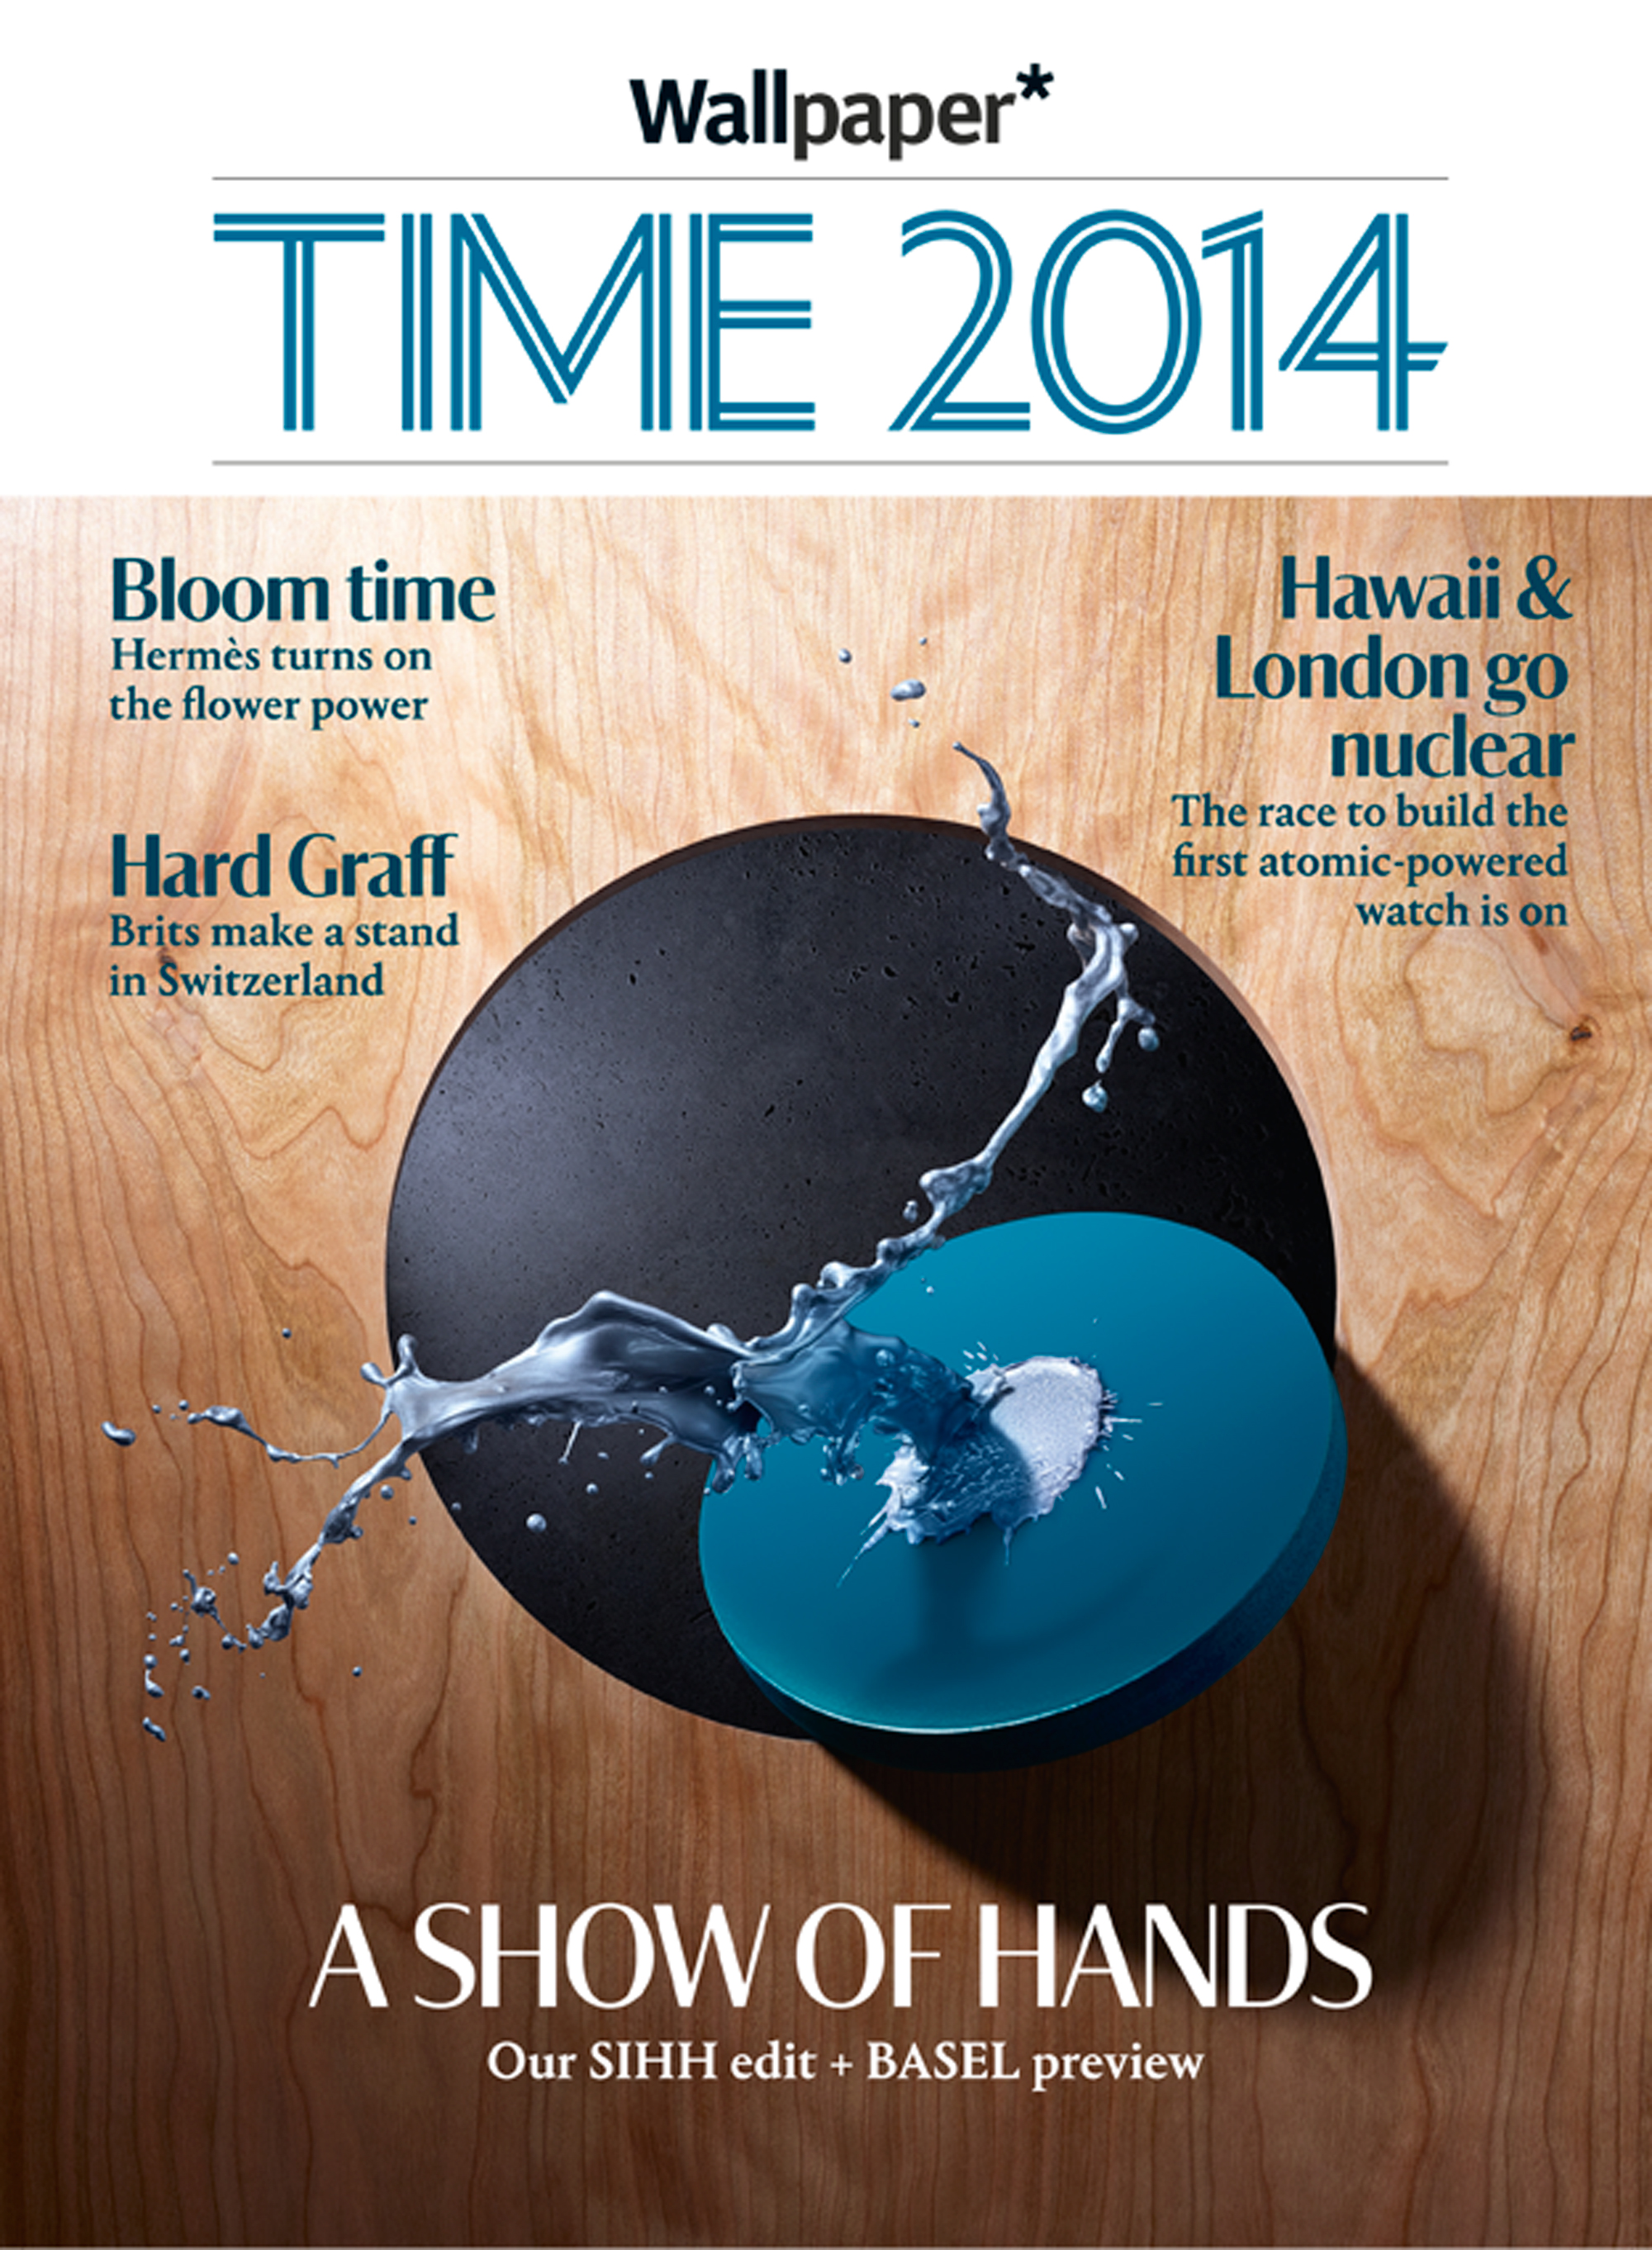 Wallpaper* Time Supplement, photography by Sam Hofman